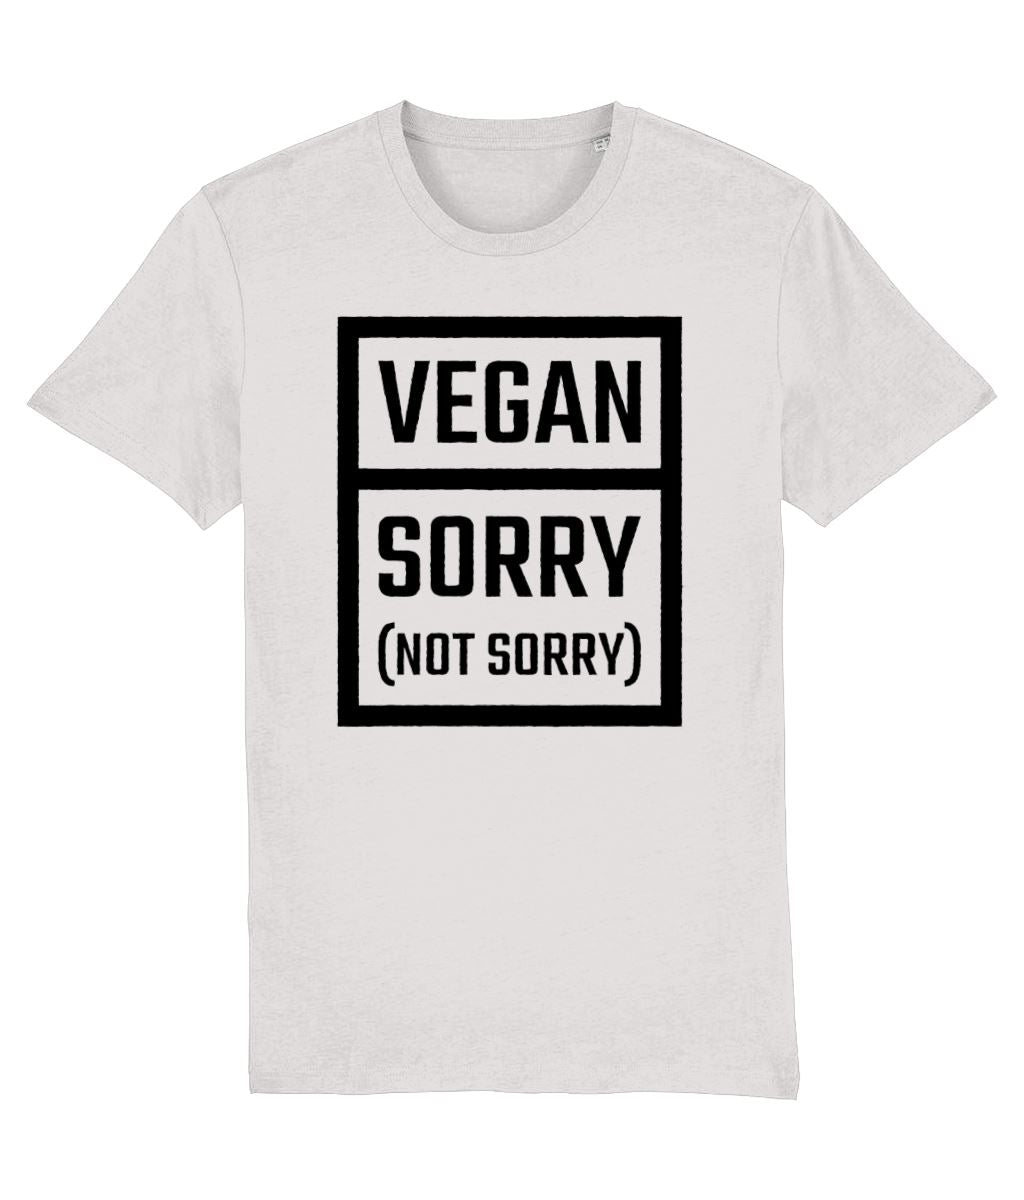 """Vegan: Sorry (Not Sorry)"" T-Shirt - 100% Organic Cotton (Unisex) Clothing Vegan Original Cream Heather Grey XX-Small"